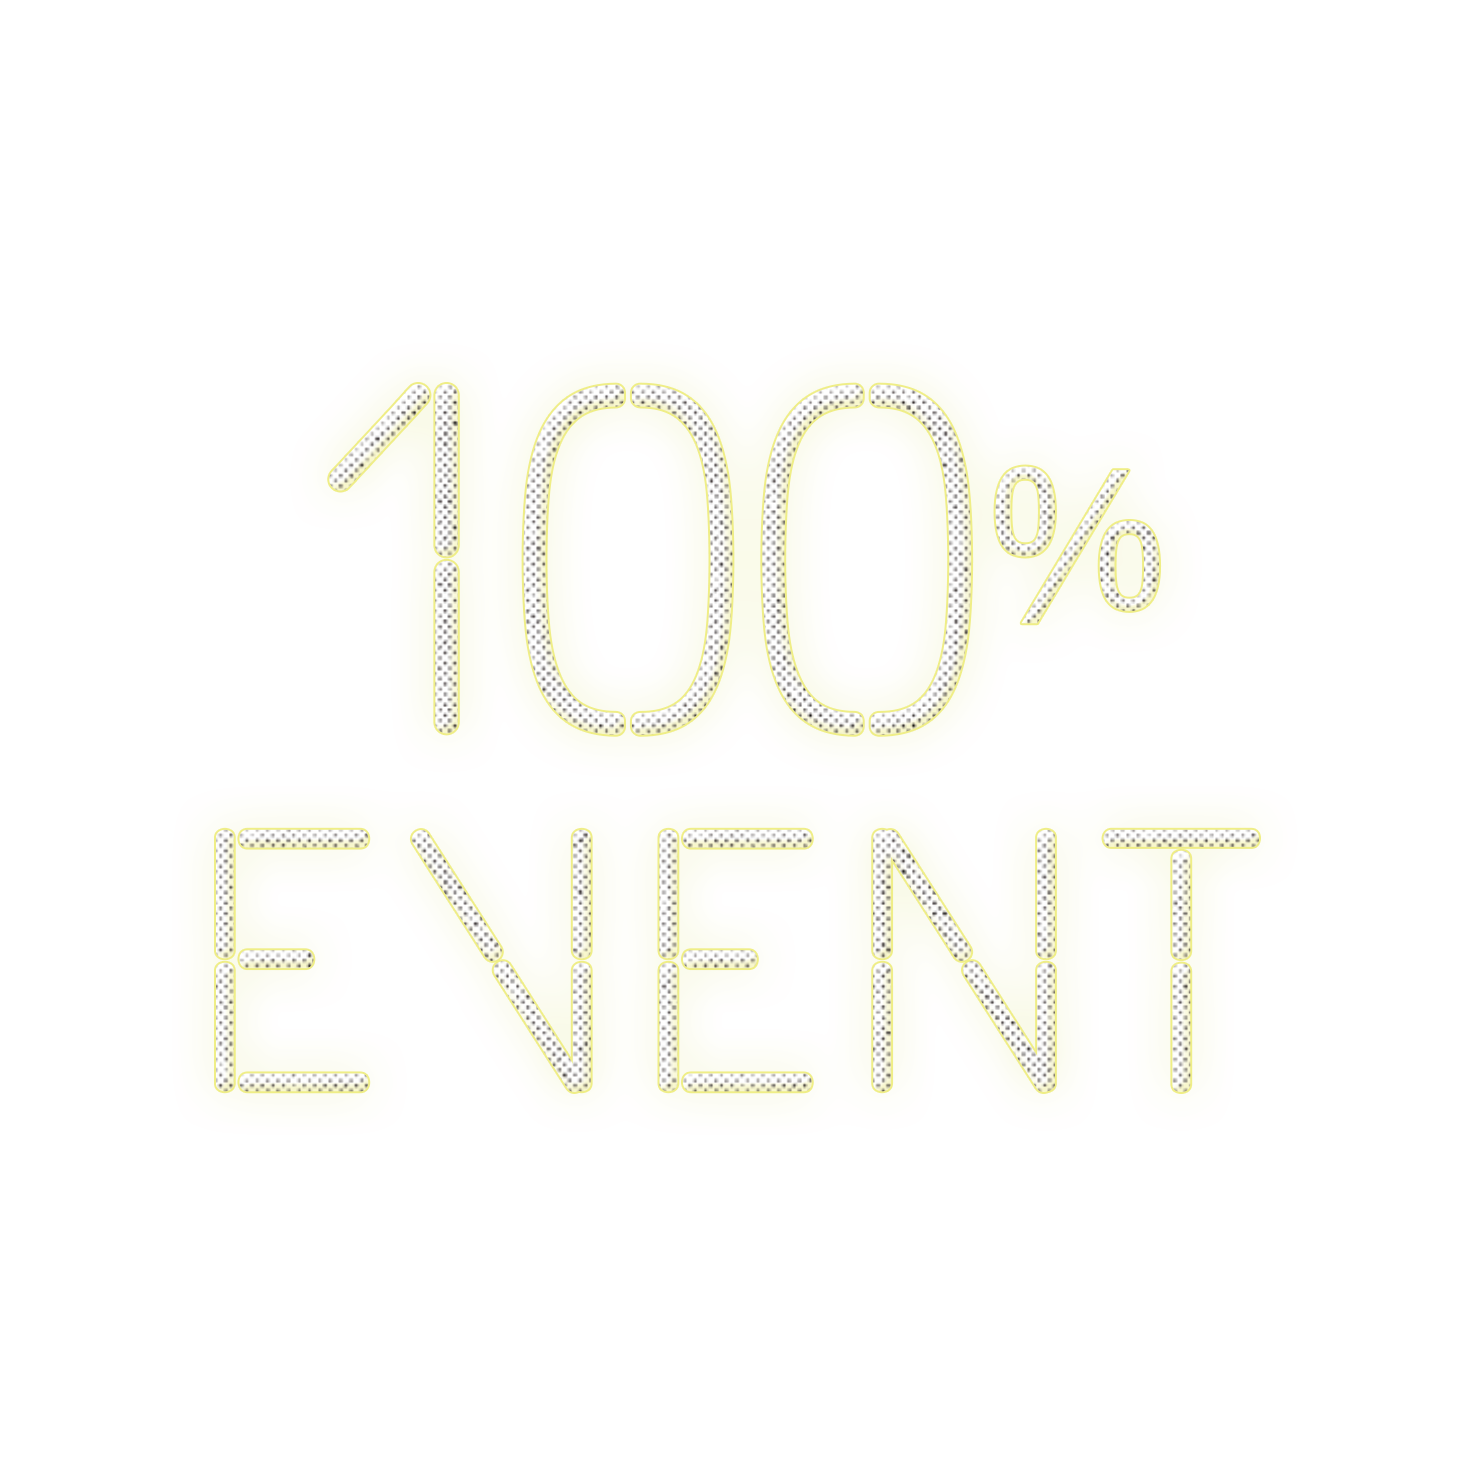 100event